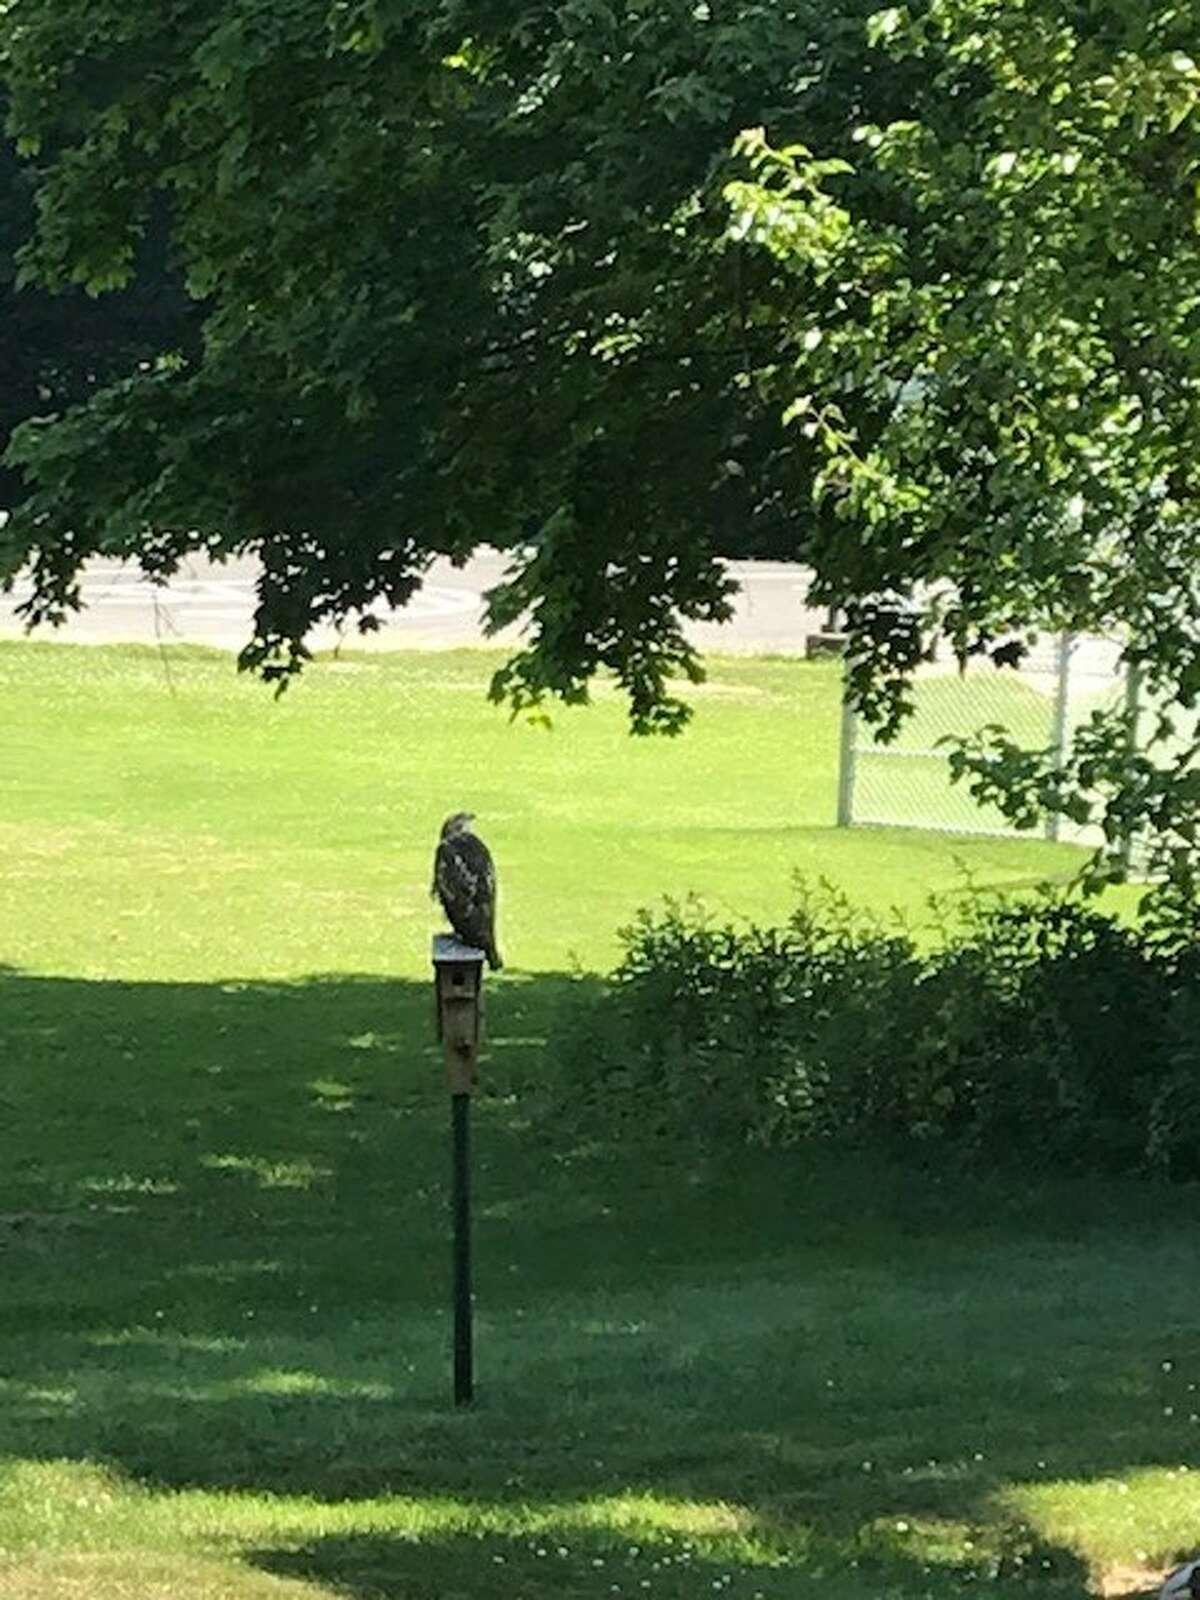 This just seems a little too easy for a bird of prey, says Linda Zwicklbauer of Slingerlands.